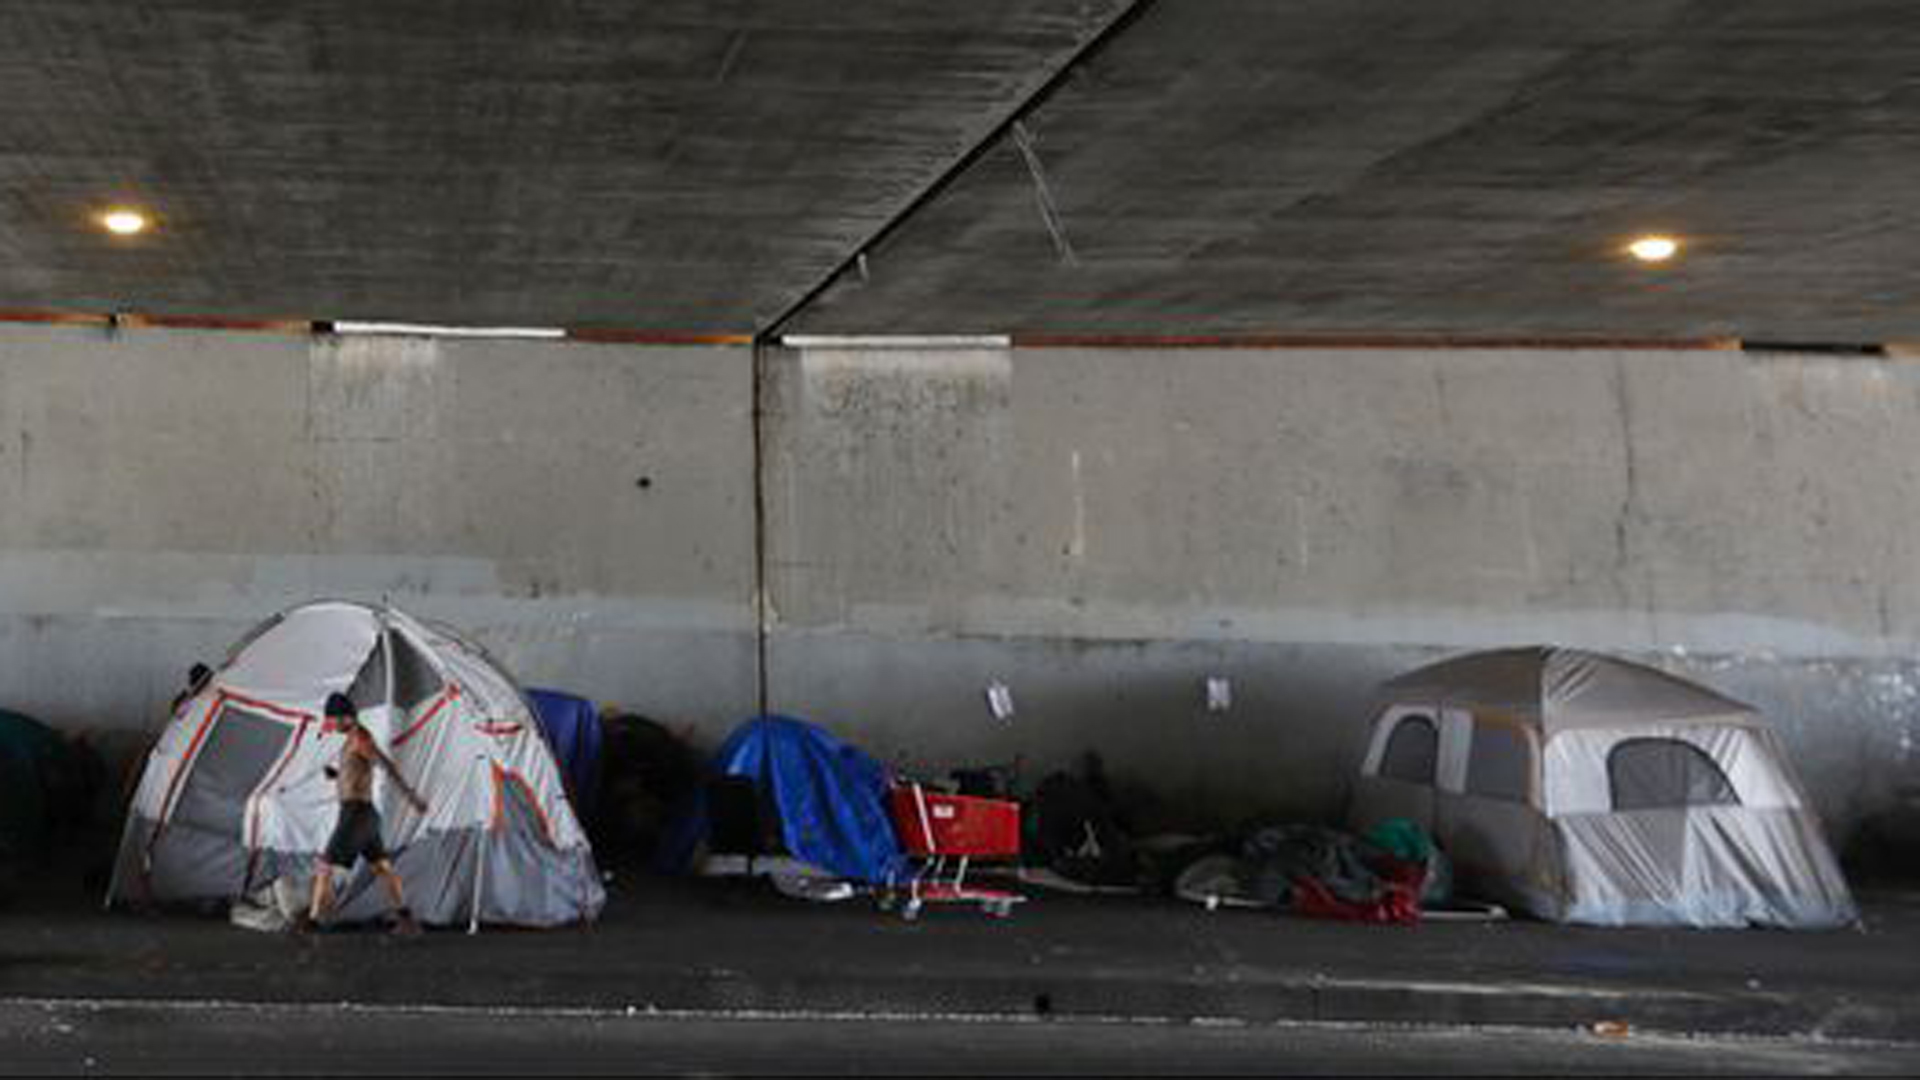 Tents line the north side of Venice Boulevard under the 405 Freeway overpass in Los Angeles in this undated photo. (Credit: Francine Orr / Los Angeles Times)